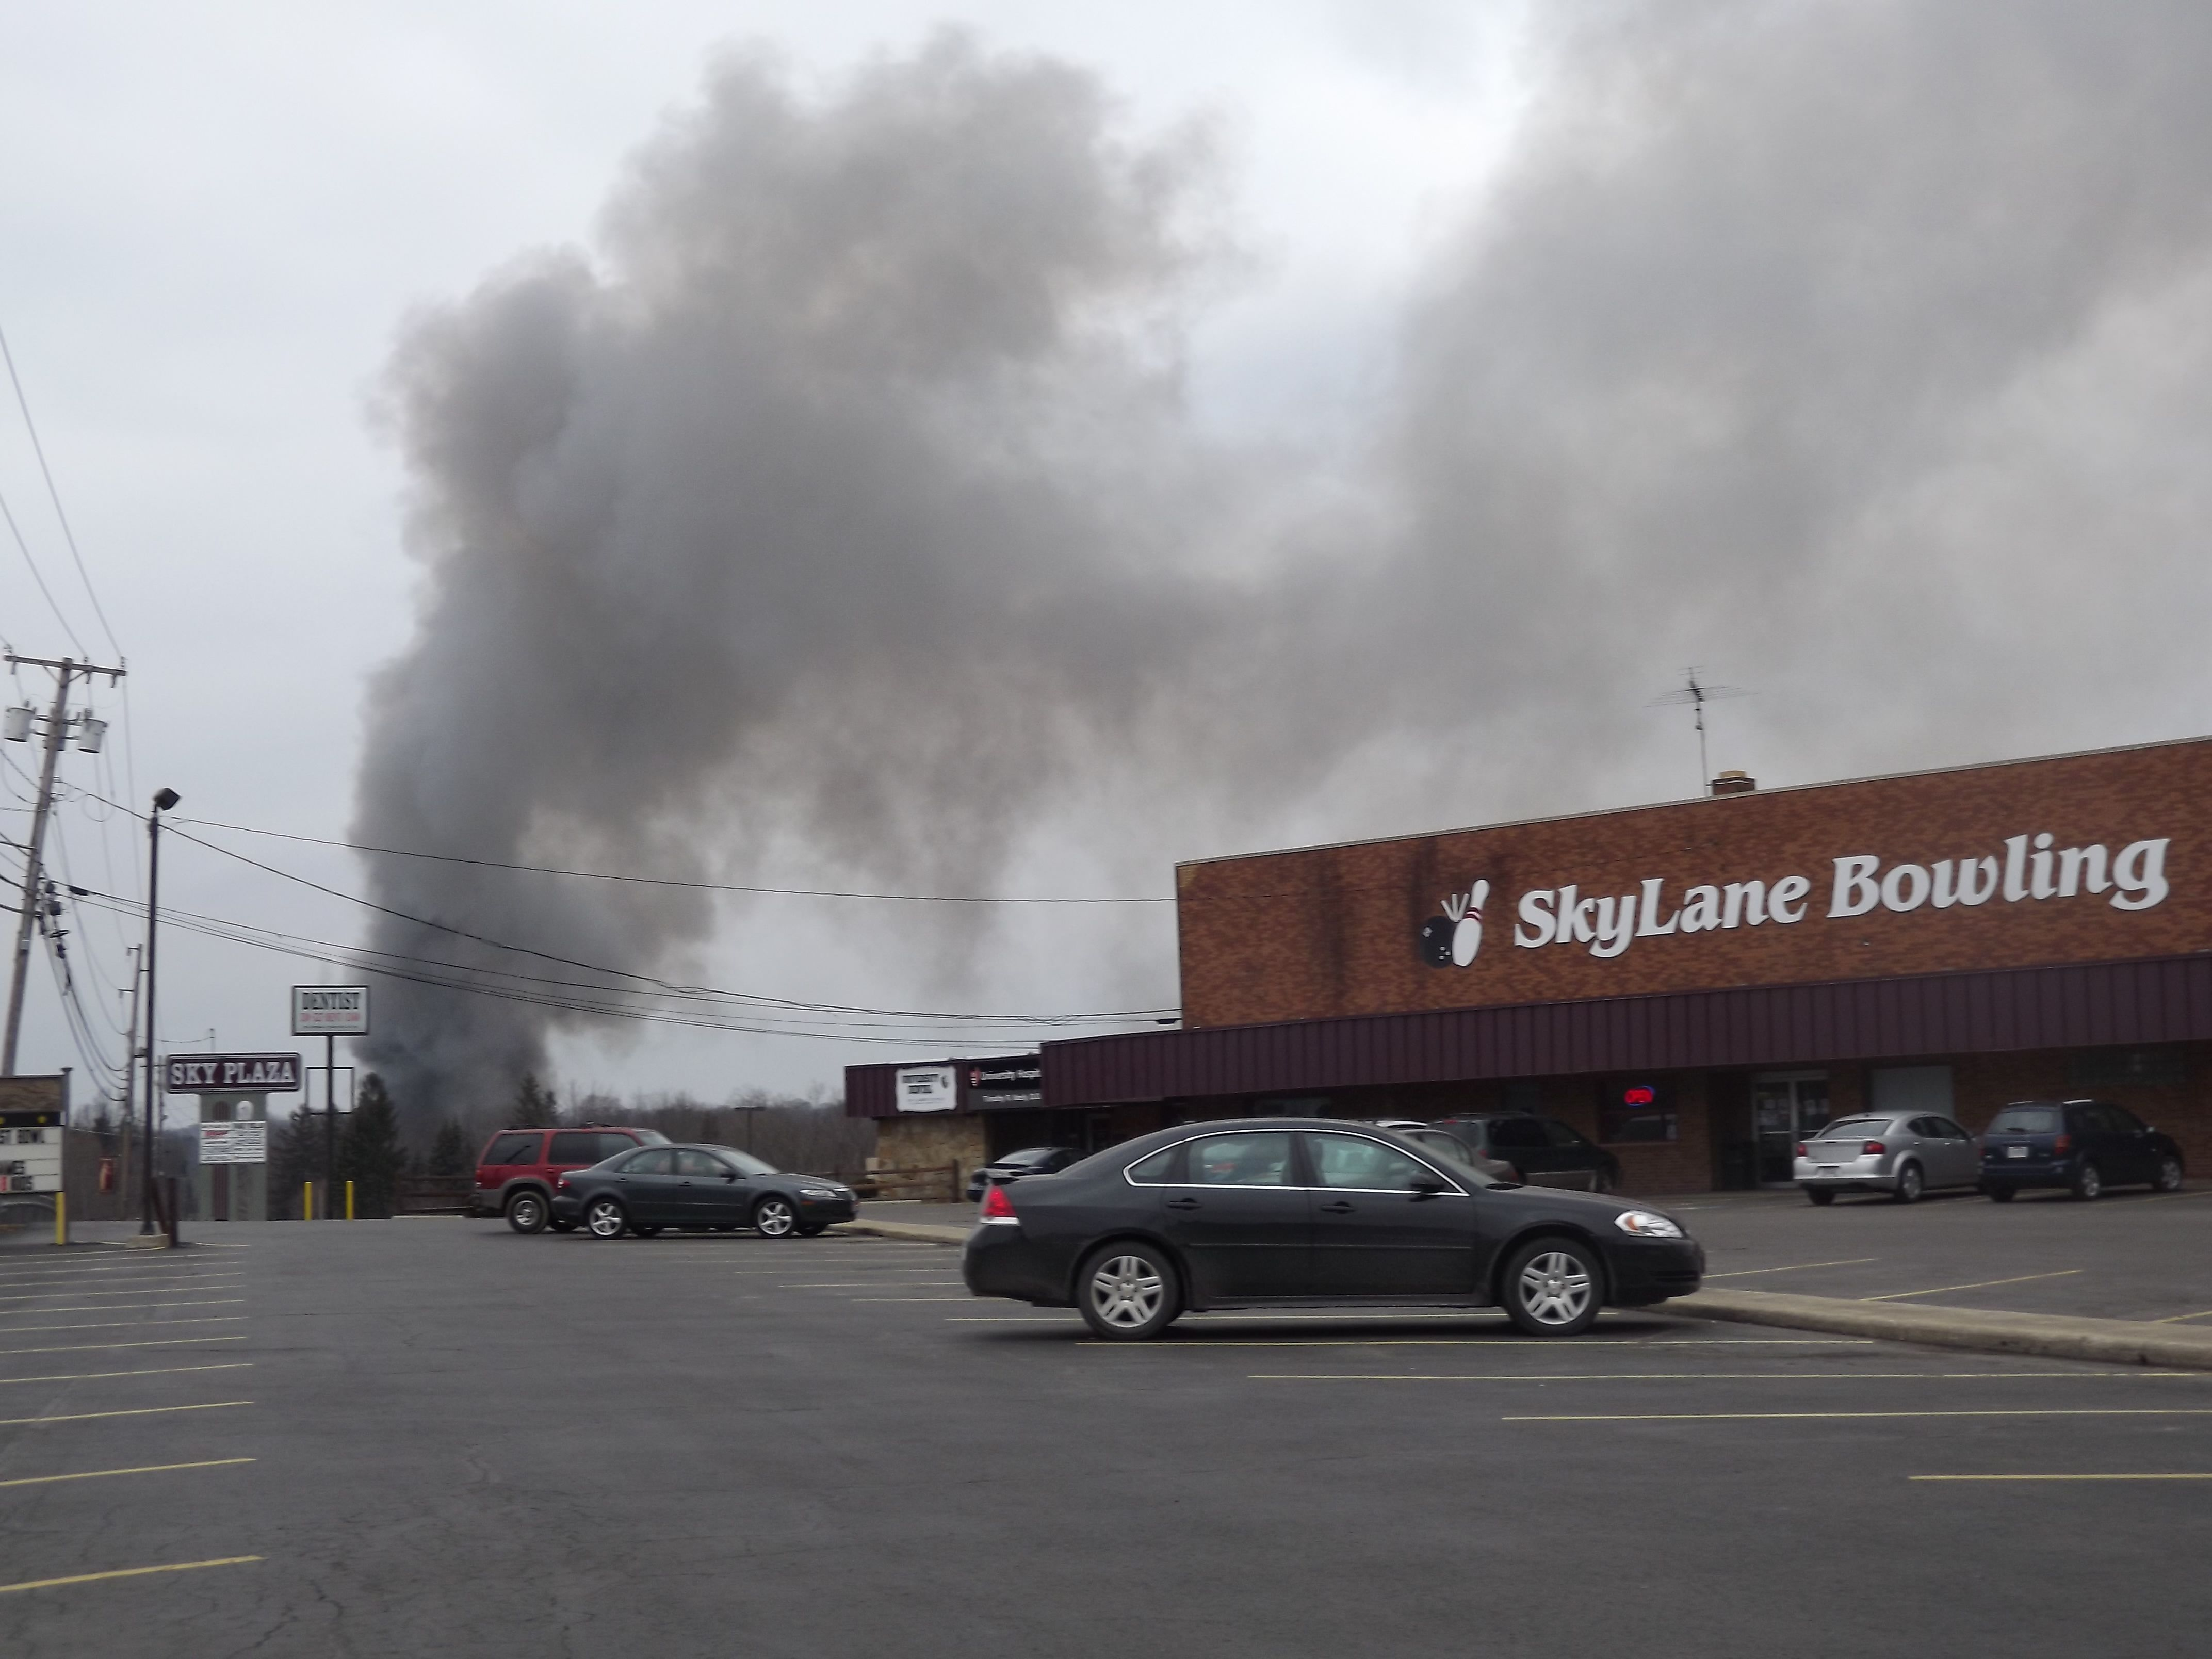 View Of Garrettsville Fire March 22 2014 From The Sky Lanes Bowling Alley Ohio Bowling Fire